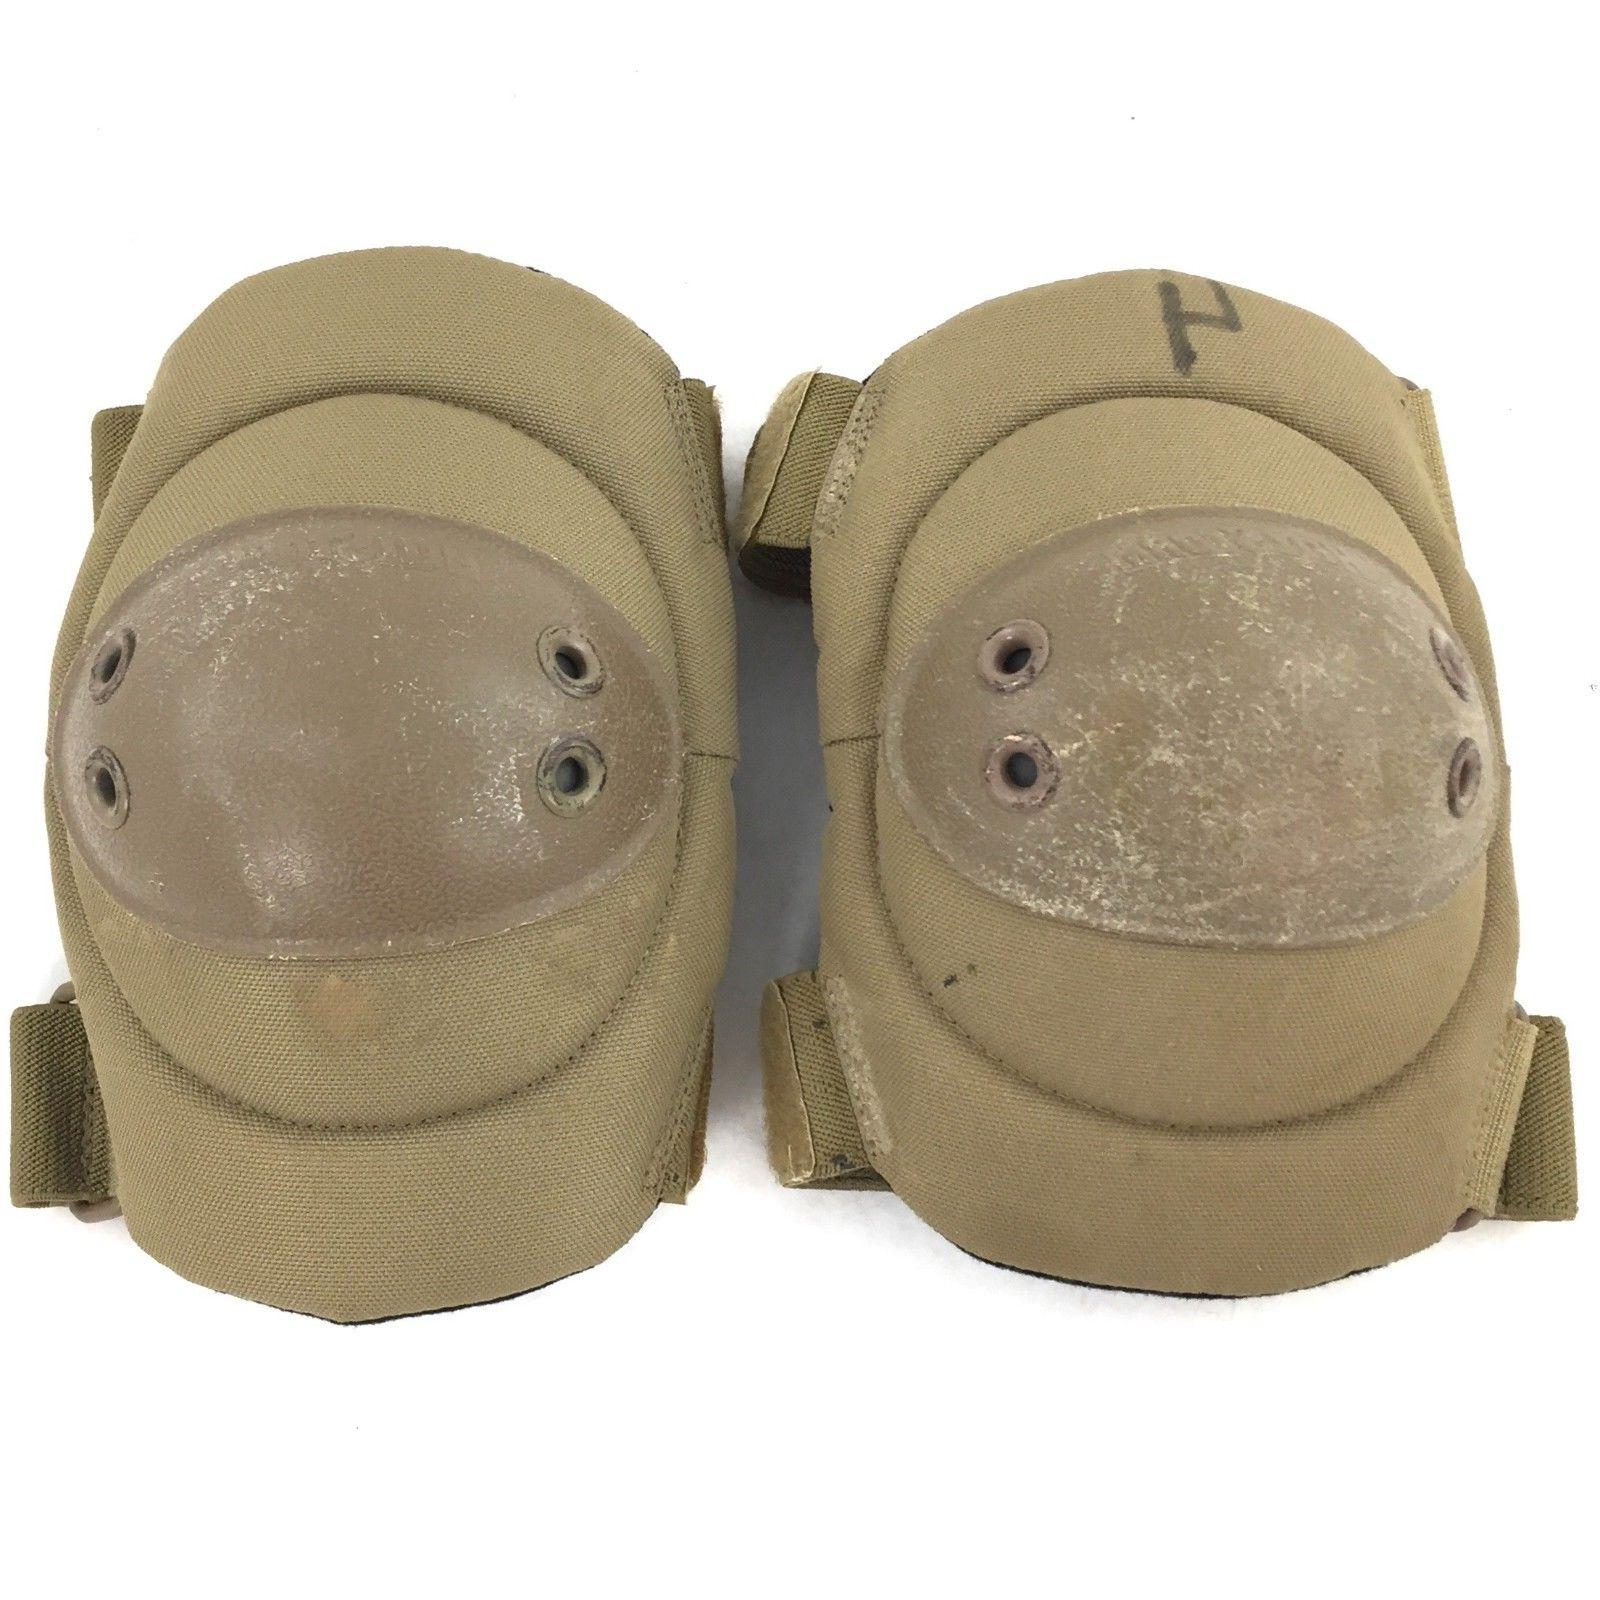 blackhawk hellstorm advanced tactical elbow pads coyote